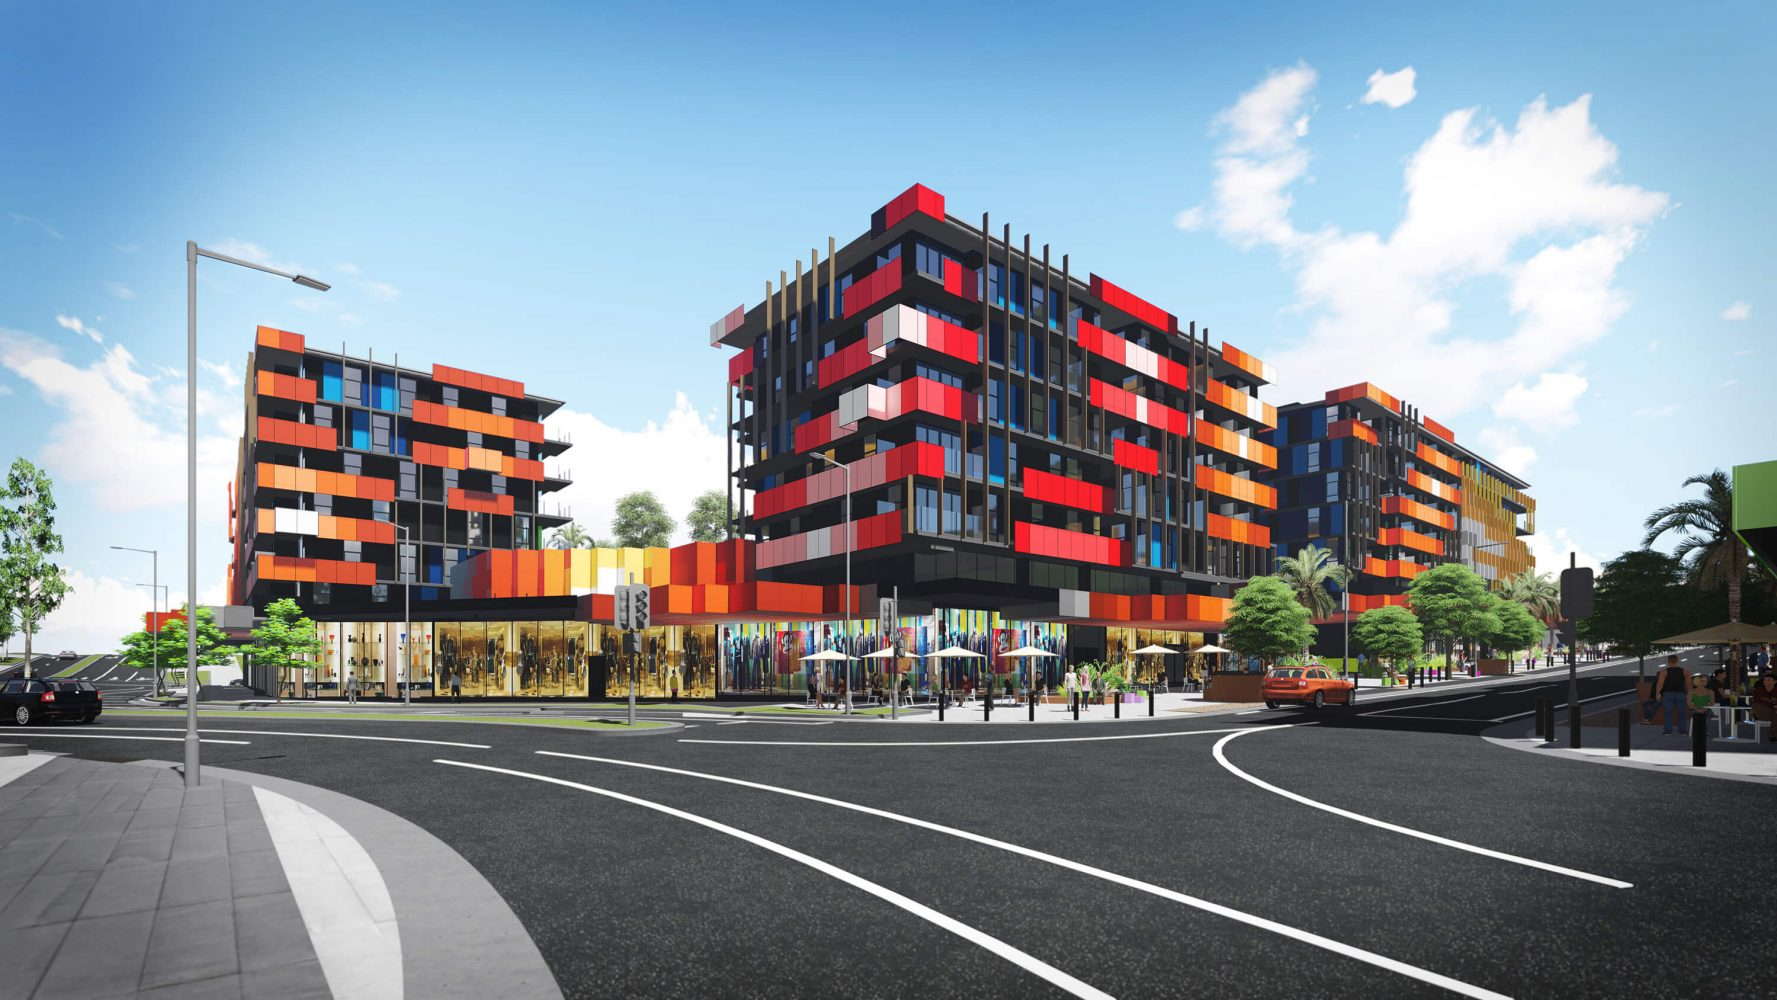 This Grocon masterplanned development initially to house the athletes of the Commonwealth Games 2018 on the Gold Coast features 1,252 dwellings with a mix of apartments and townhouses, a  retail precinct, green and landscaped spaces built around a 'Village Heart'.